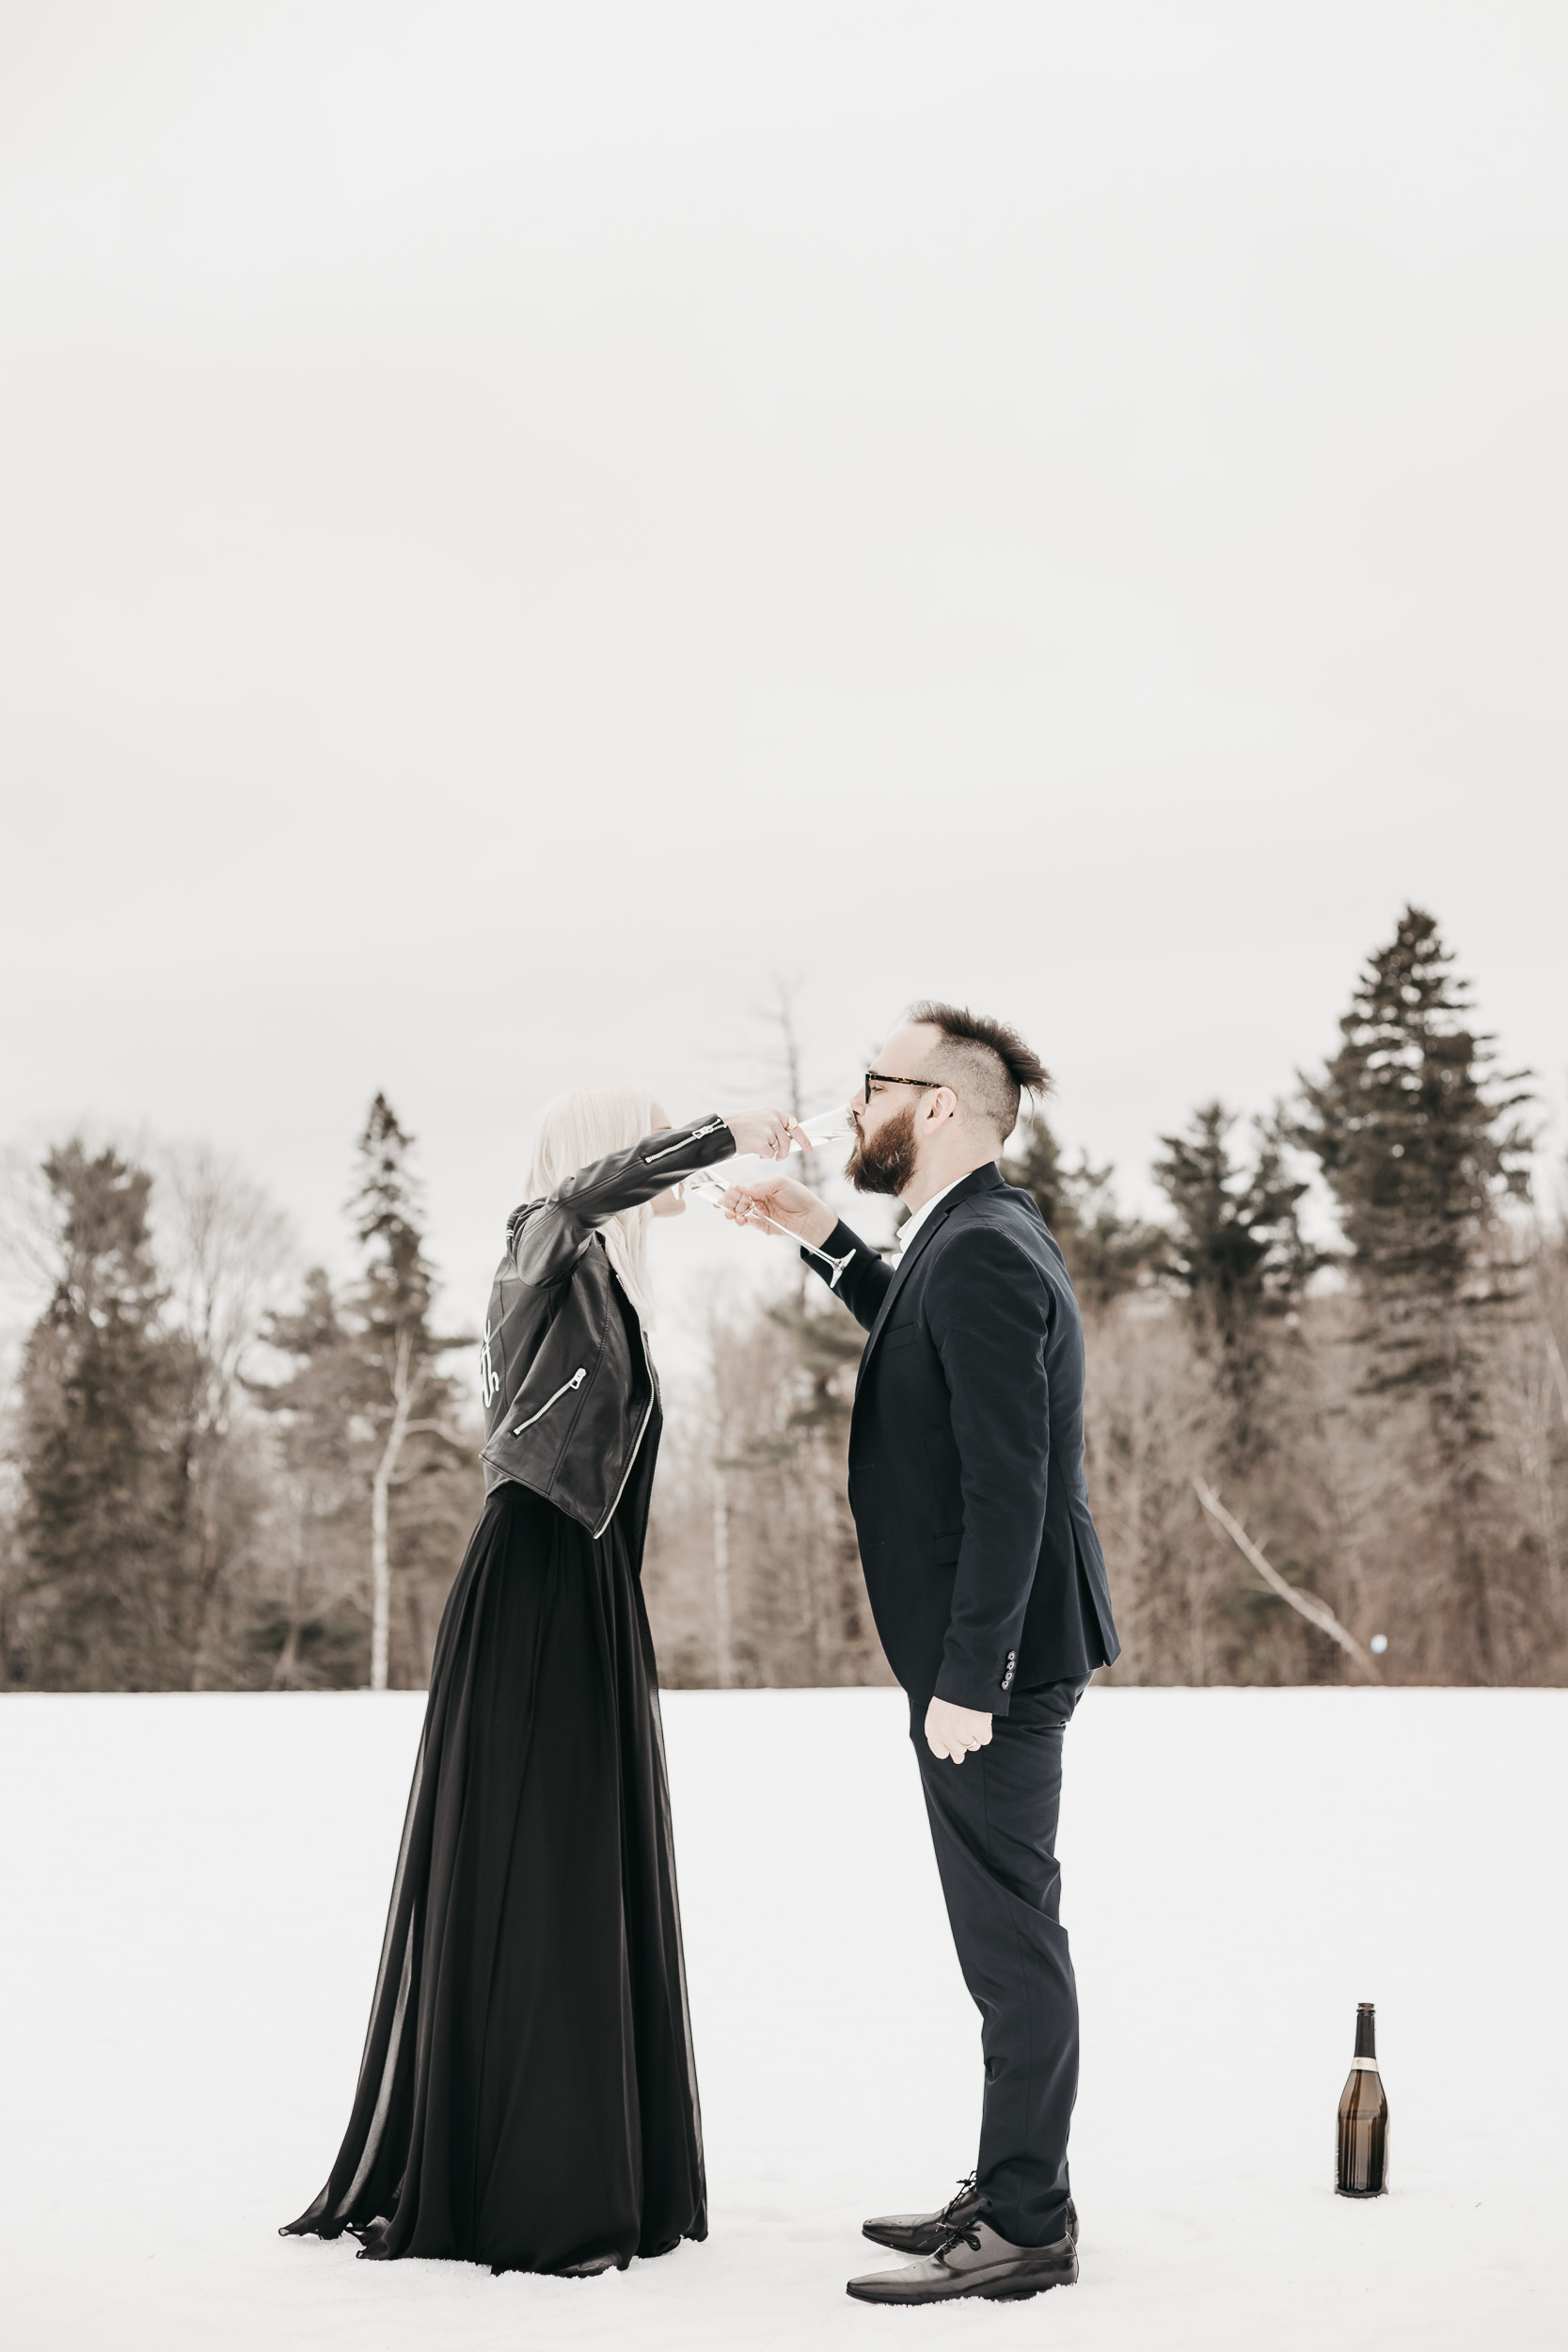 Ottawa-Elopement-Engagement-Photographer-111.jpg